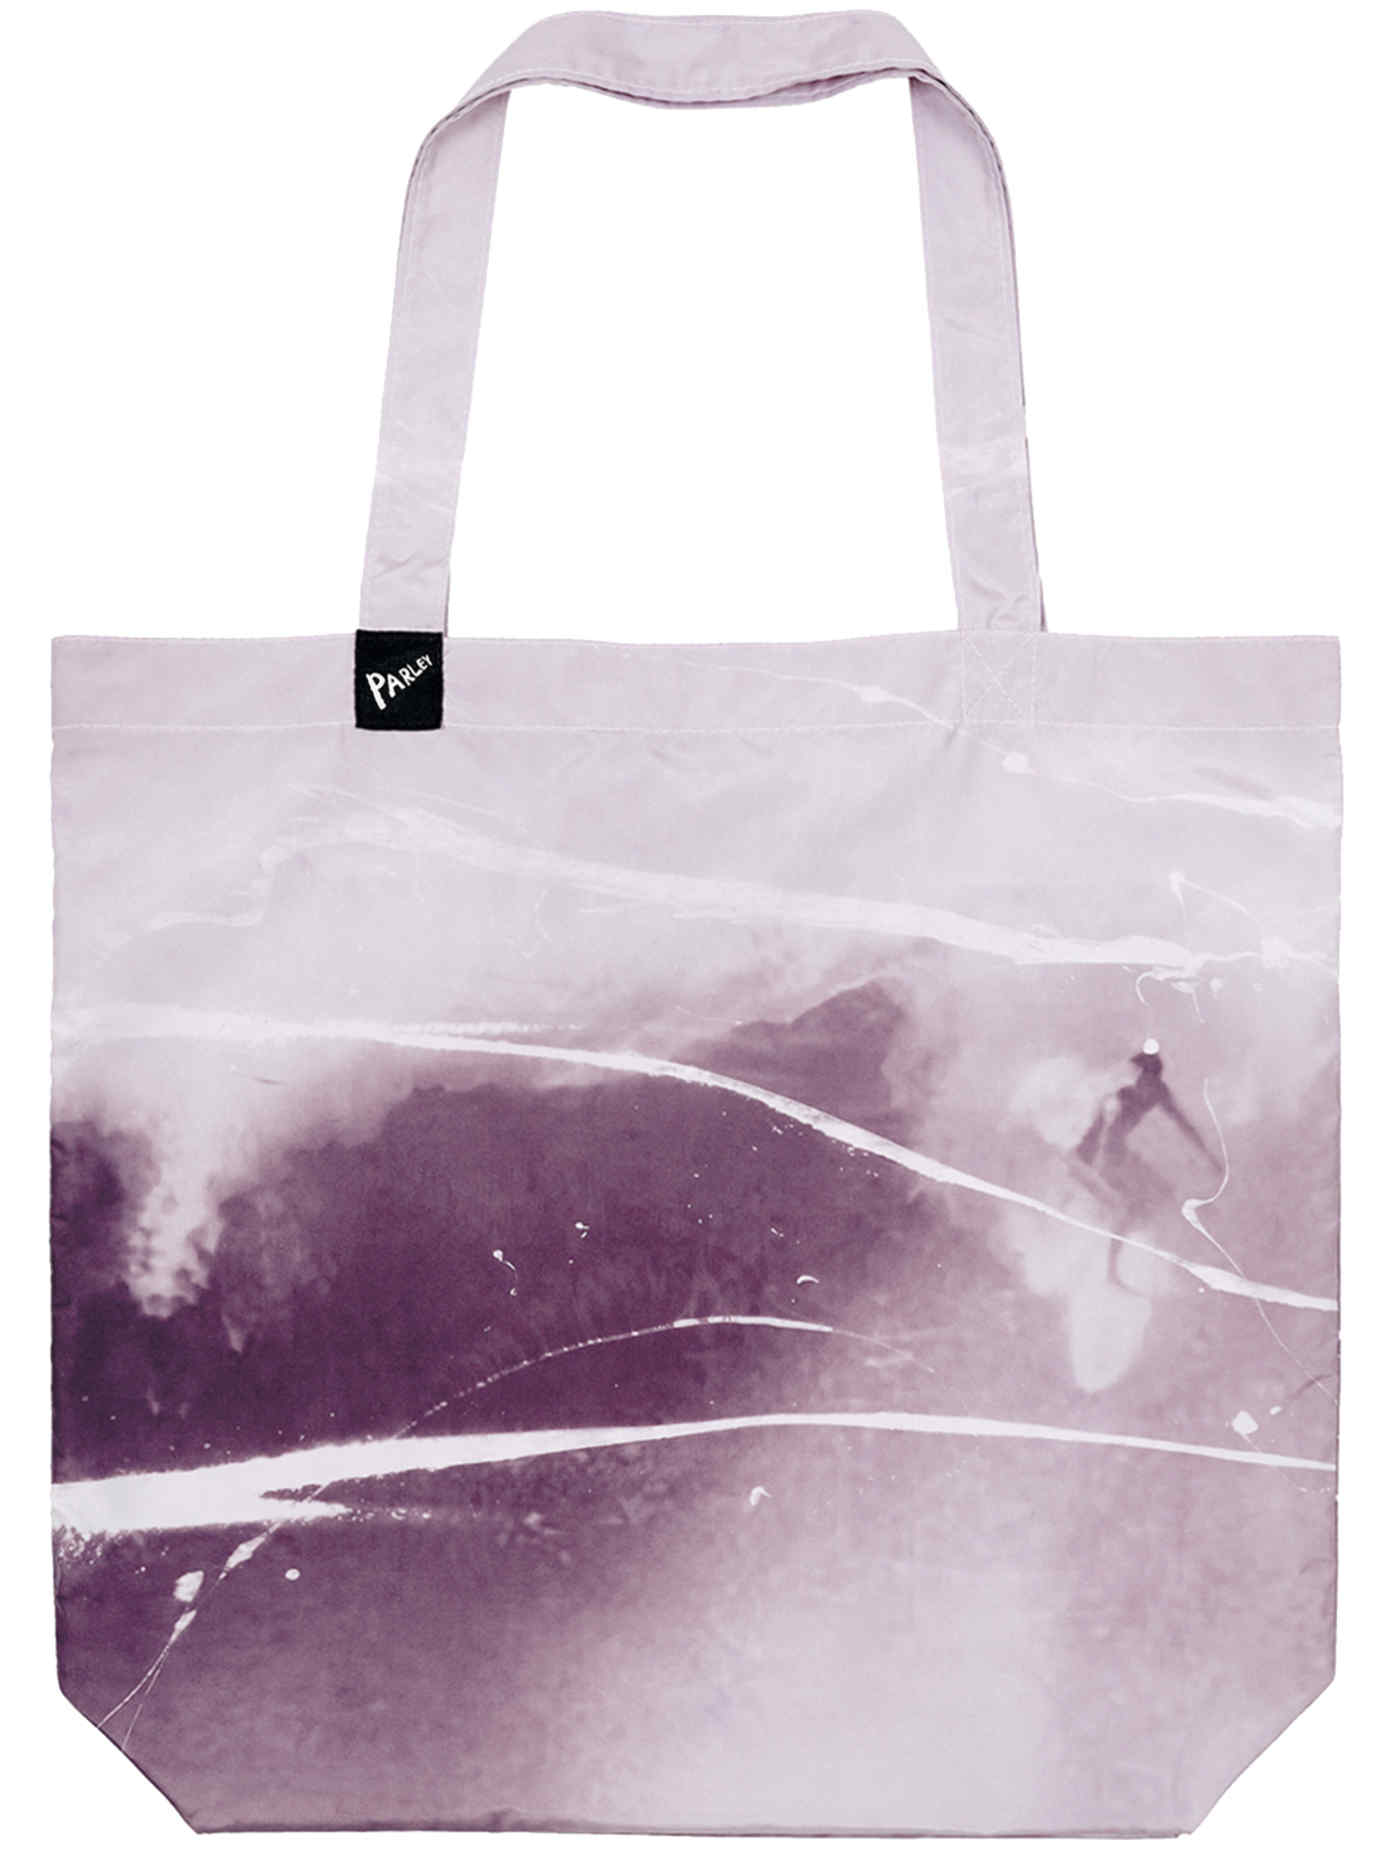 Julian Schnabel Parley Oceans bag, €50; all proceeds will support Parley for the Oceans' work to stop marine plastic pollution